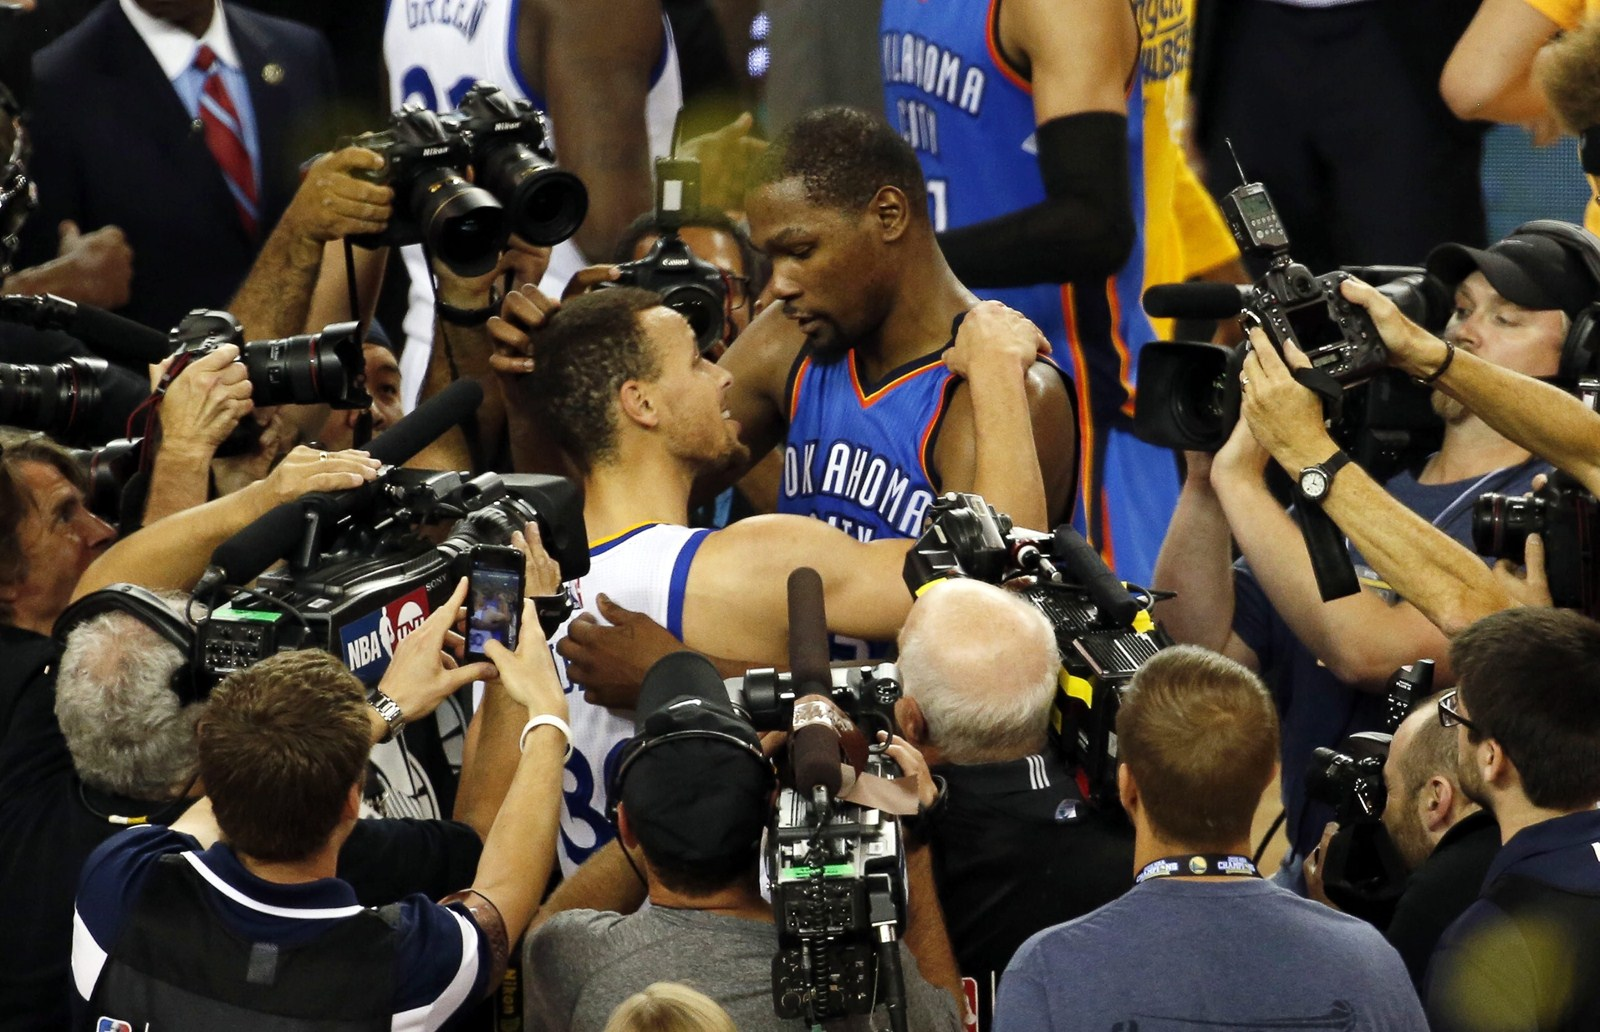 DURANT S WARRIORS DEAL IS THE RIGHT ONE - City d11a502b3